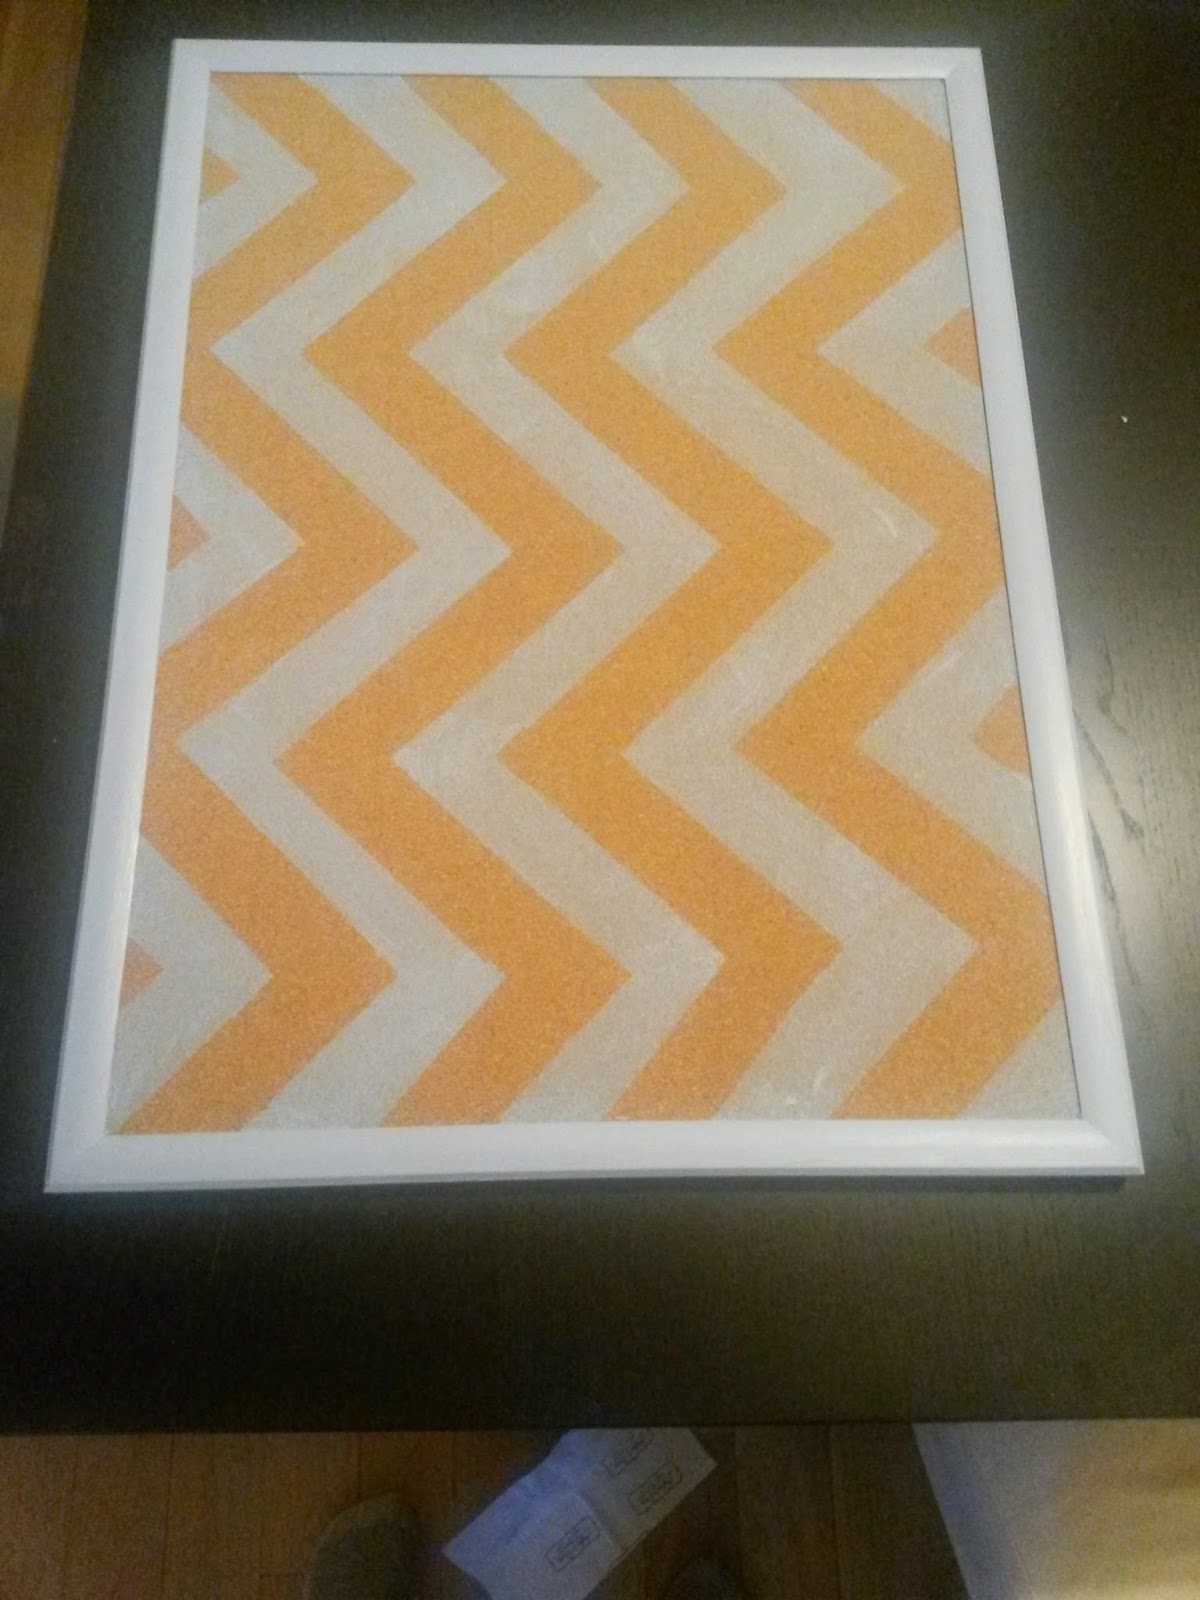 Painted Chevron Cork Board from The Delightful